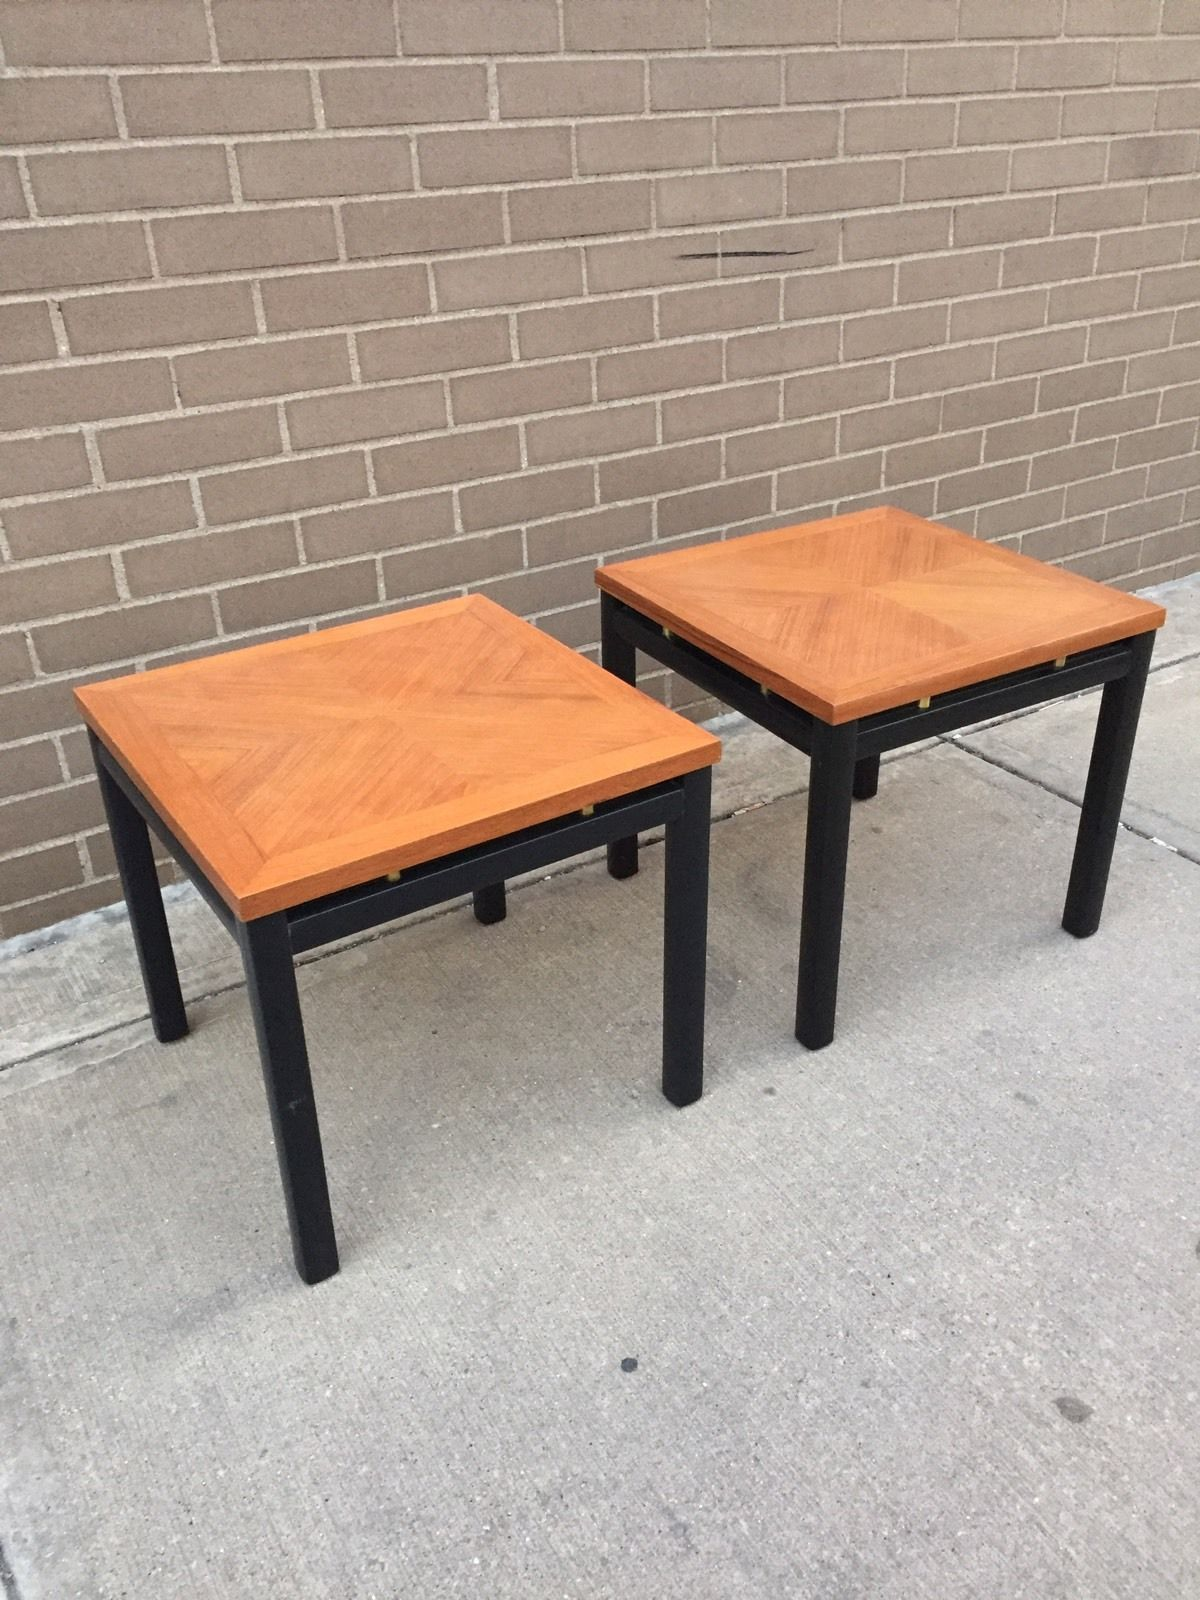 Teak And Black Lacquer End Tables. Furniture Lounge. 11 E. University Ave.